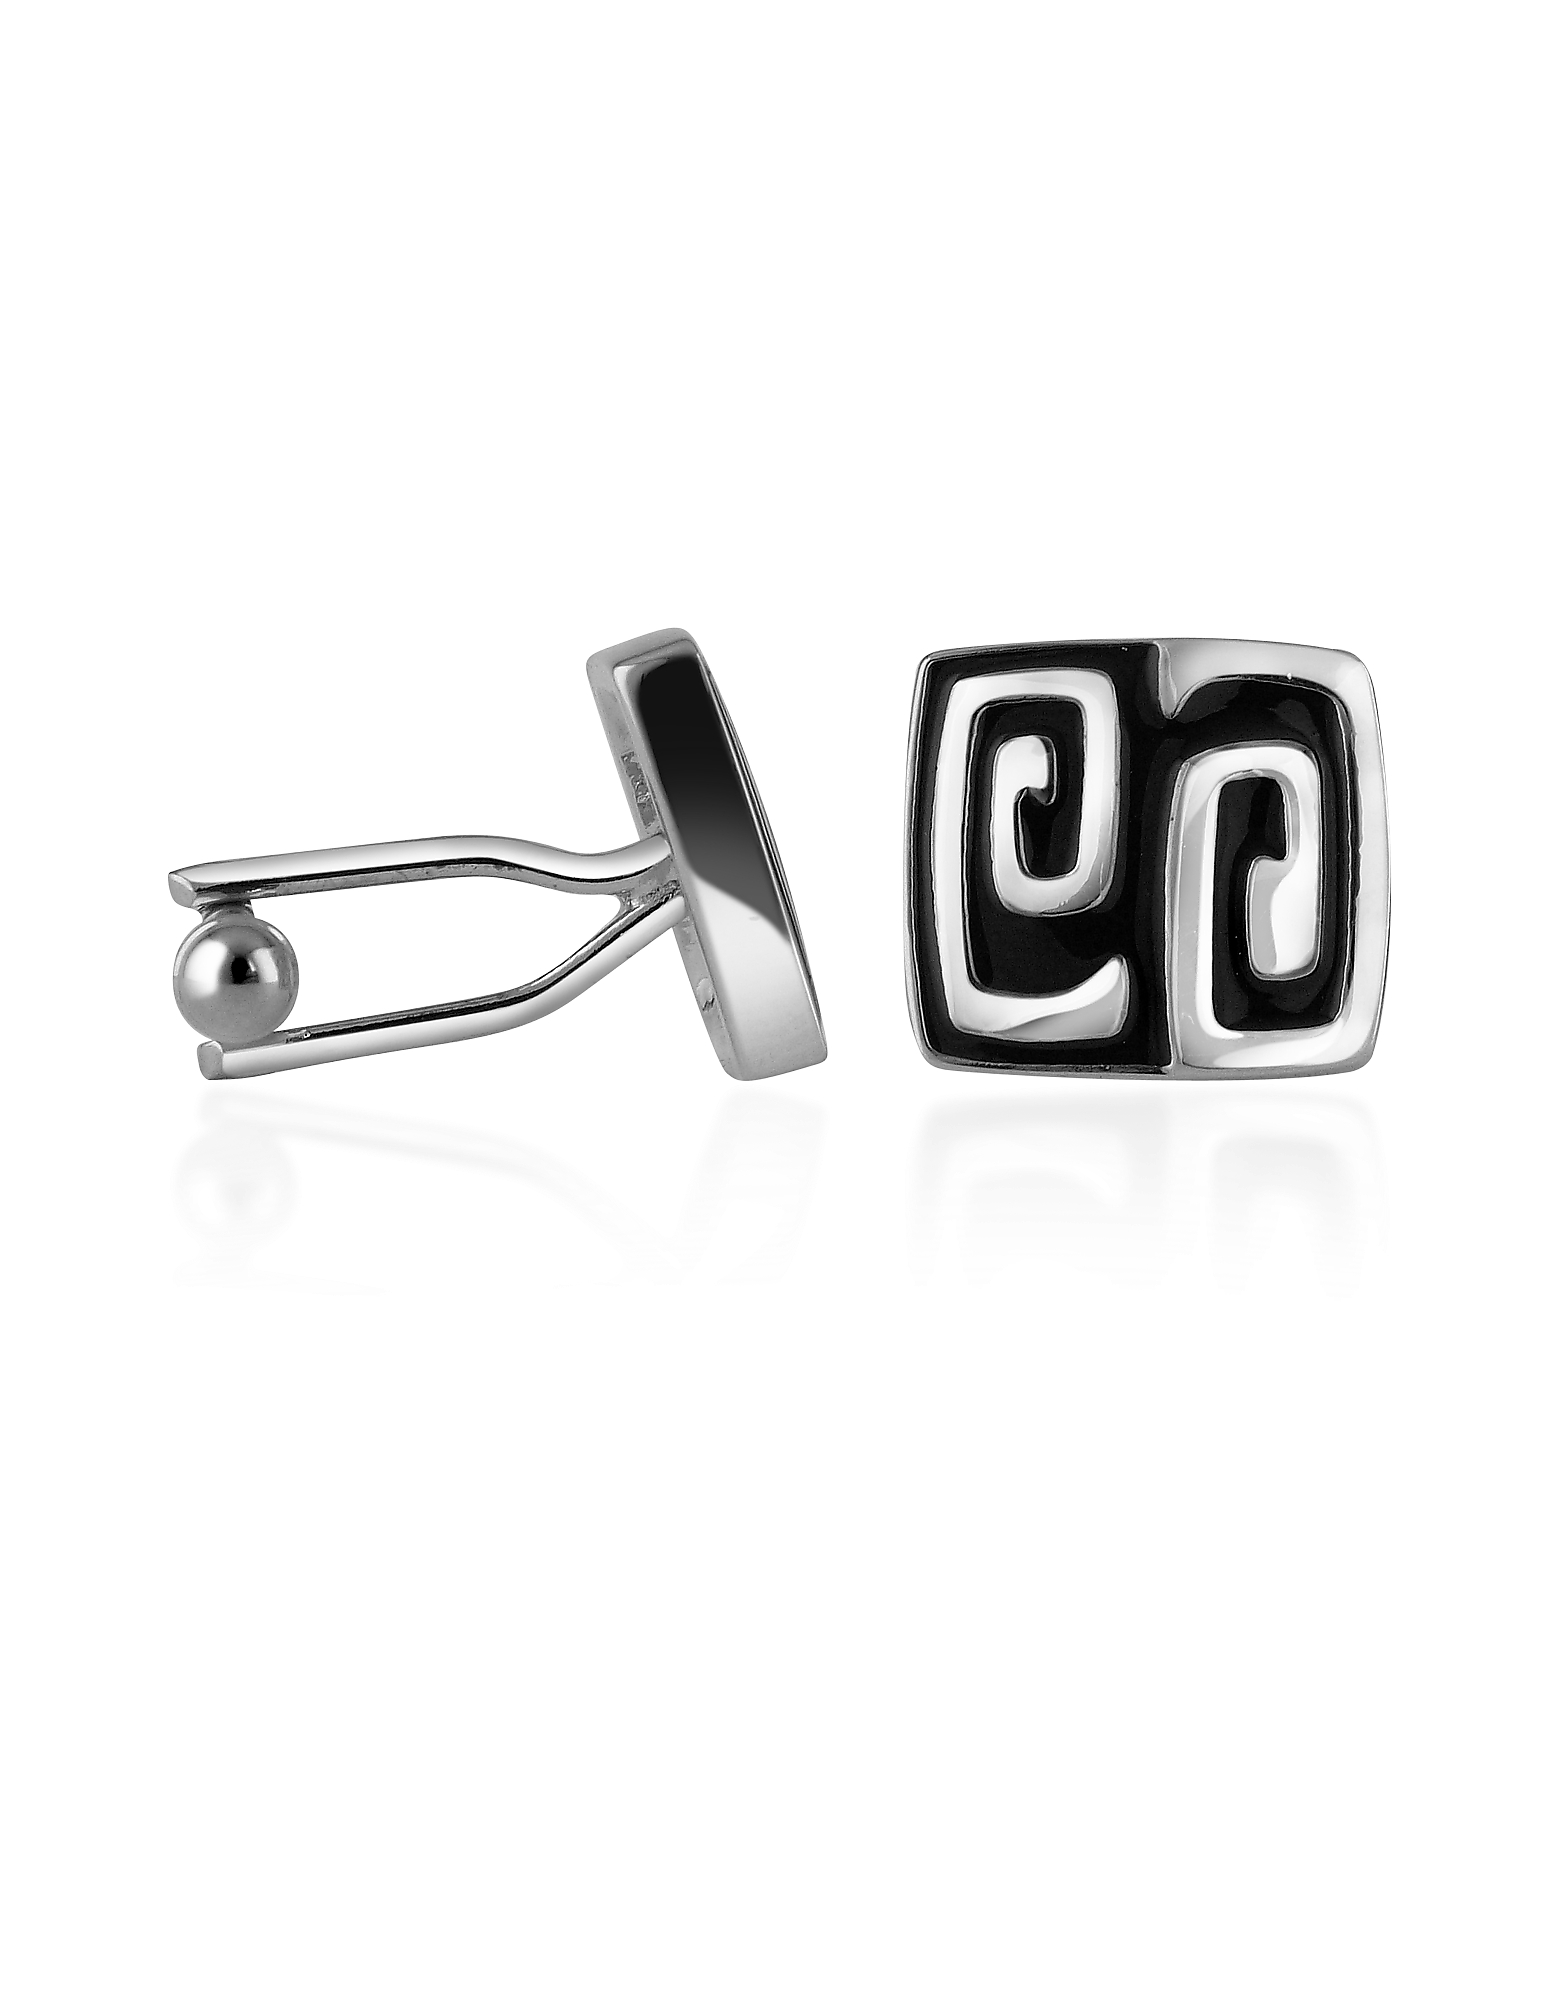 Image of AZ Collection Designer Cufflinks, Silver Plated Square Deco Cufflinks